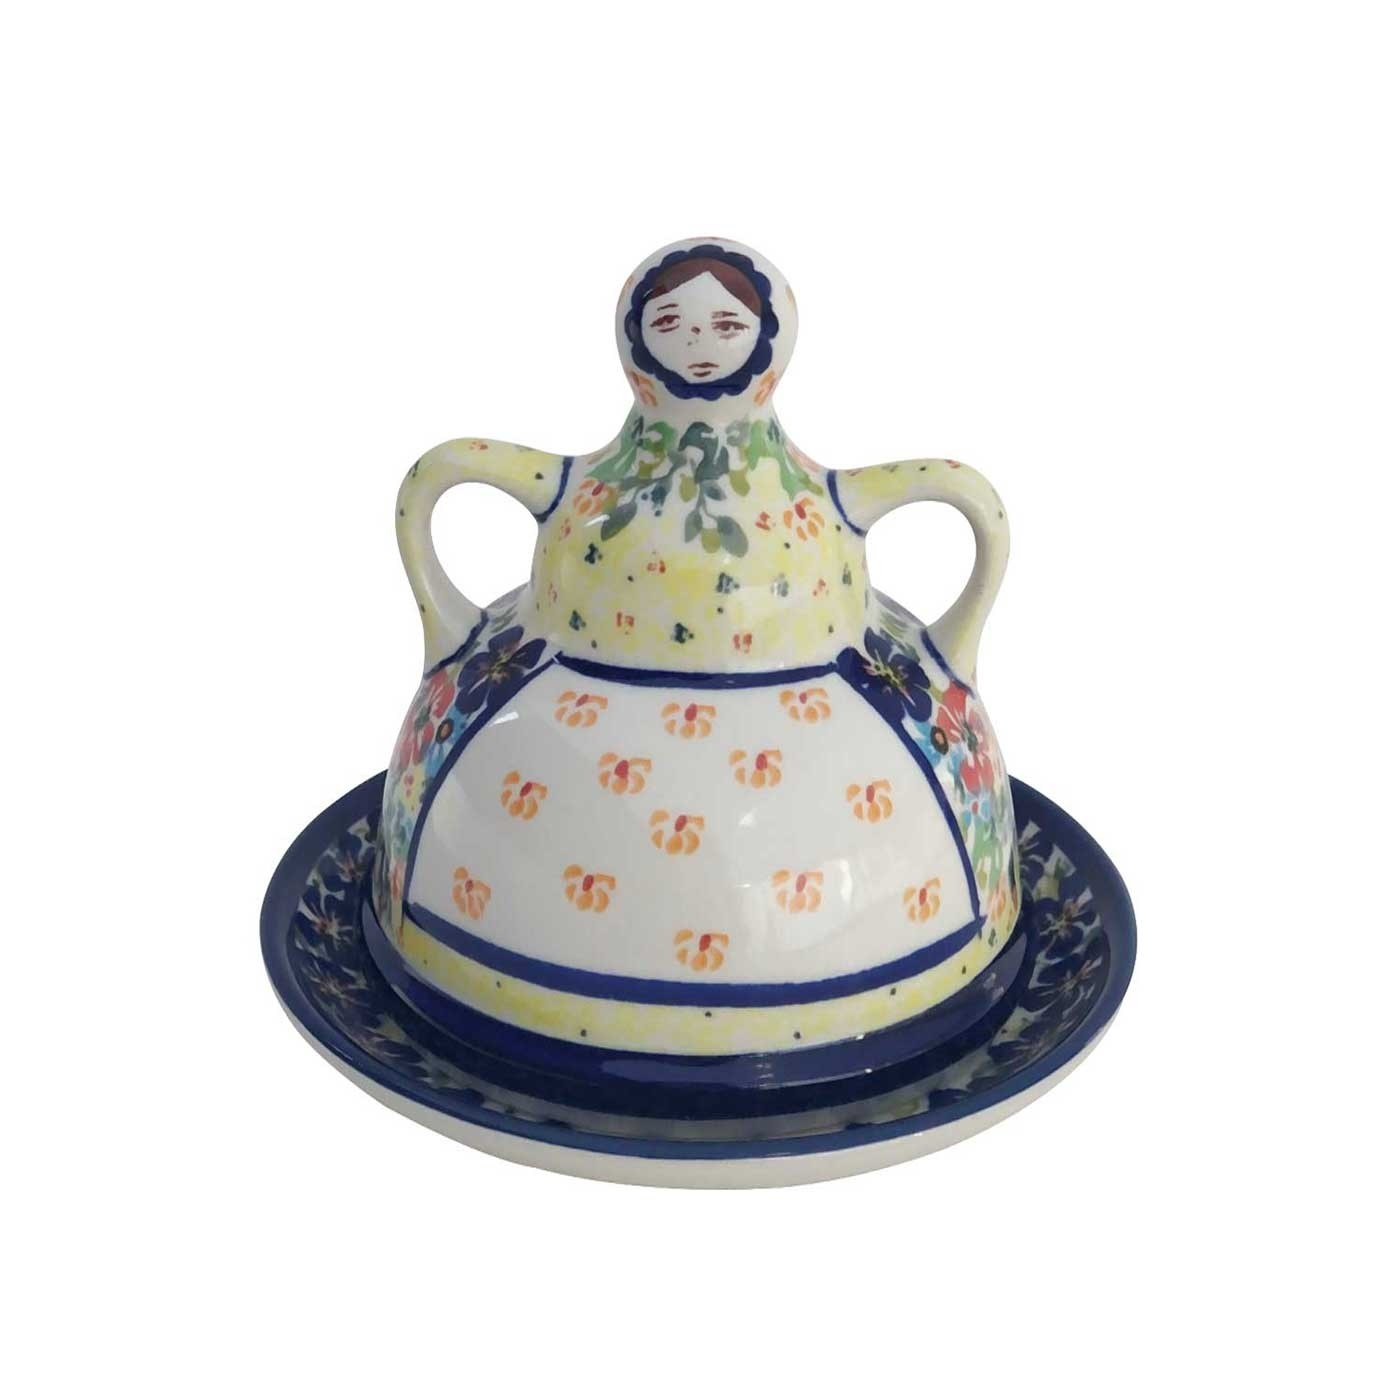 Pottery Avenue 2pc Stoneware Cheese Lady - Front - 1124-262AR Flowering Splendor